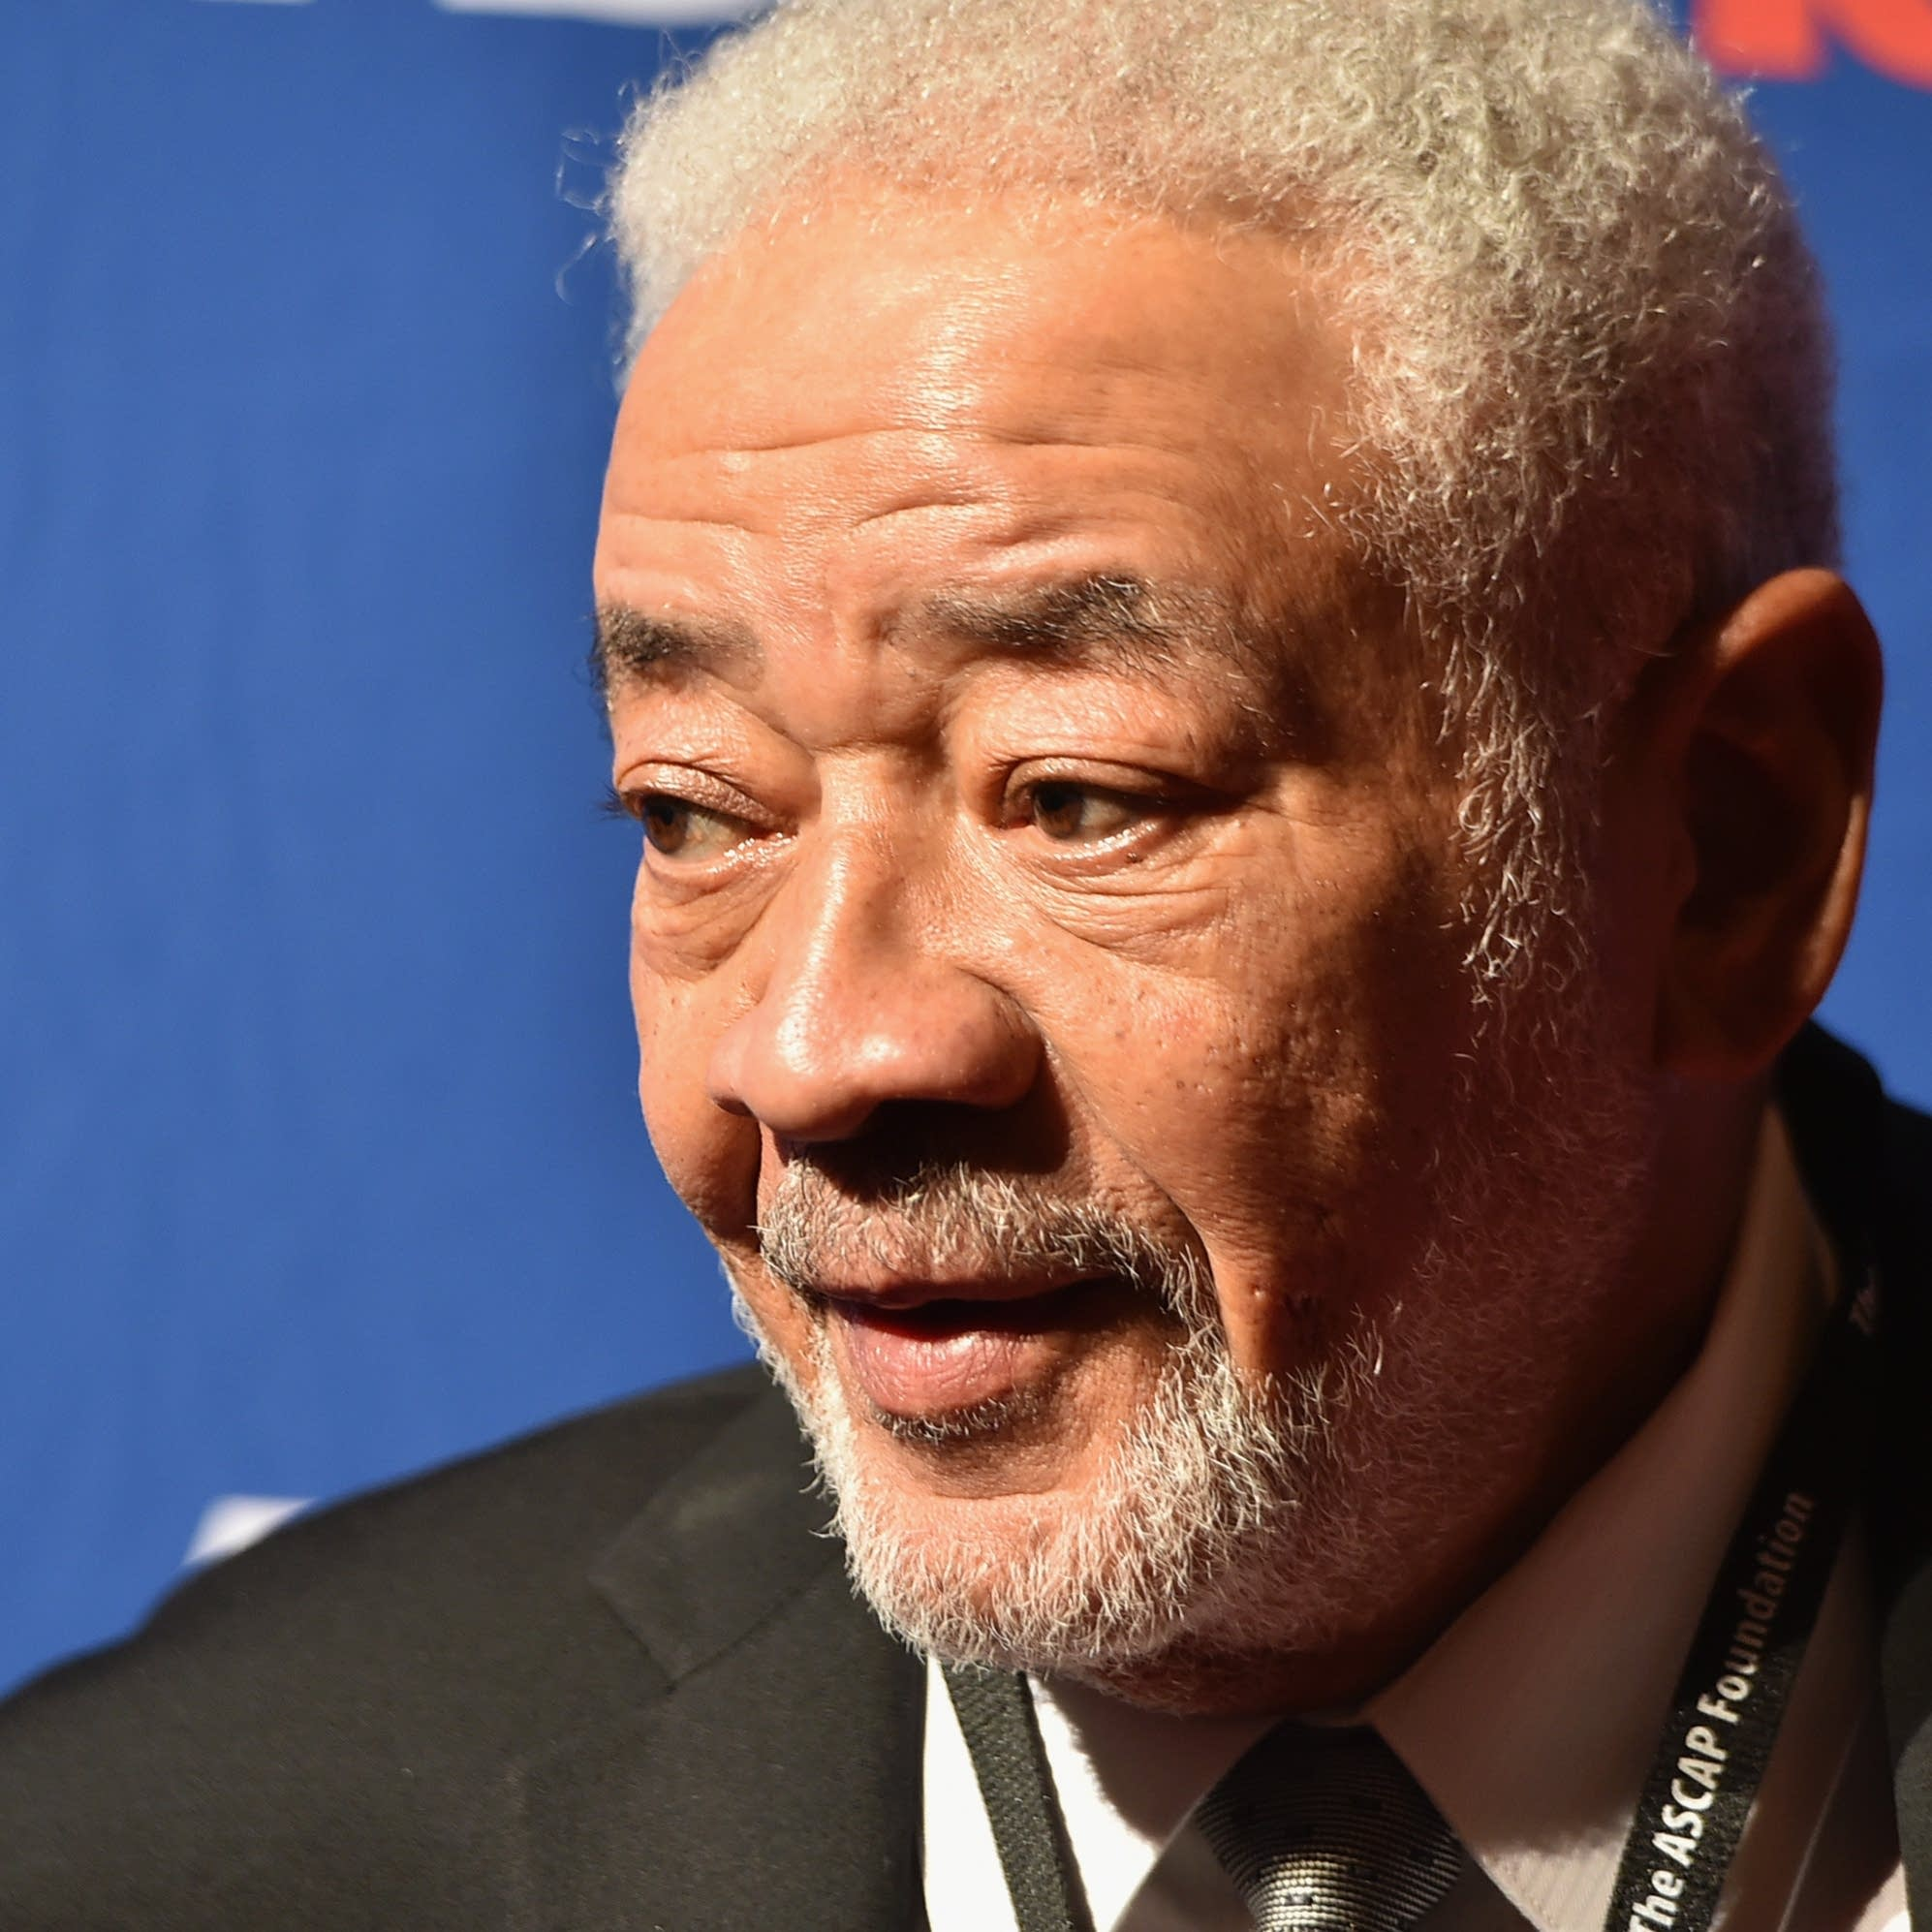 Bill Withers at the ASCAP Centennial Awards in 2014.